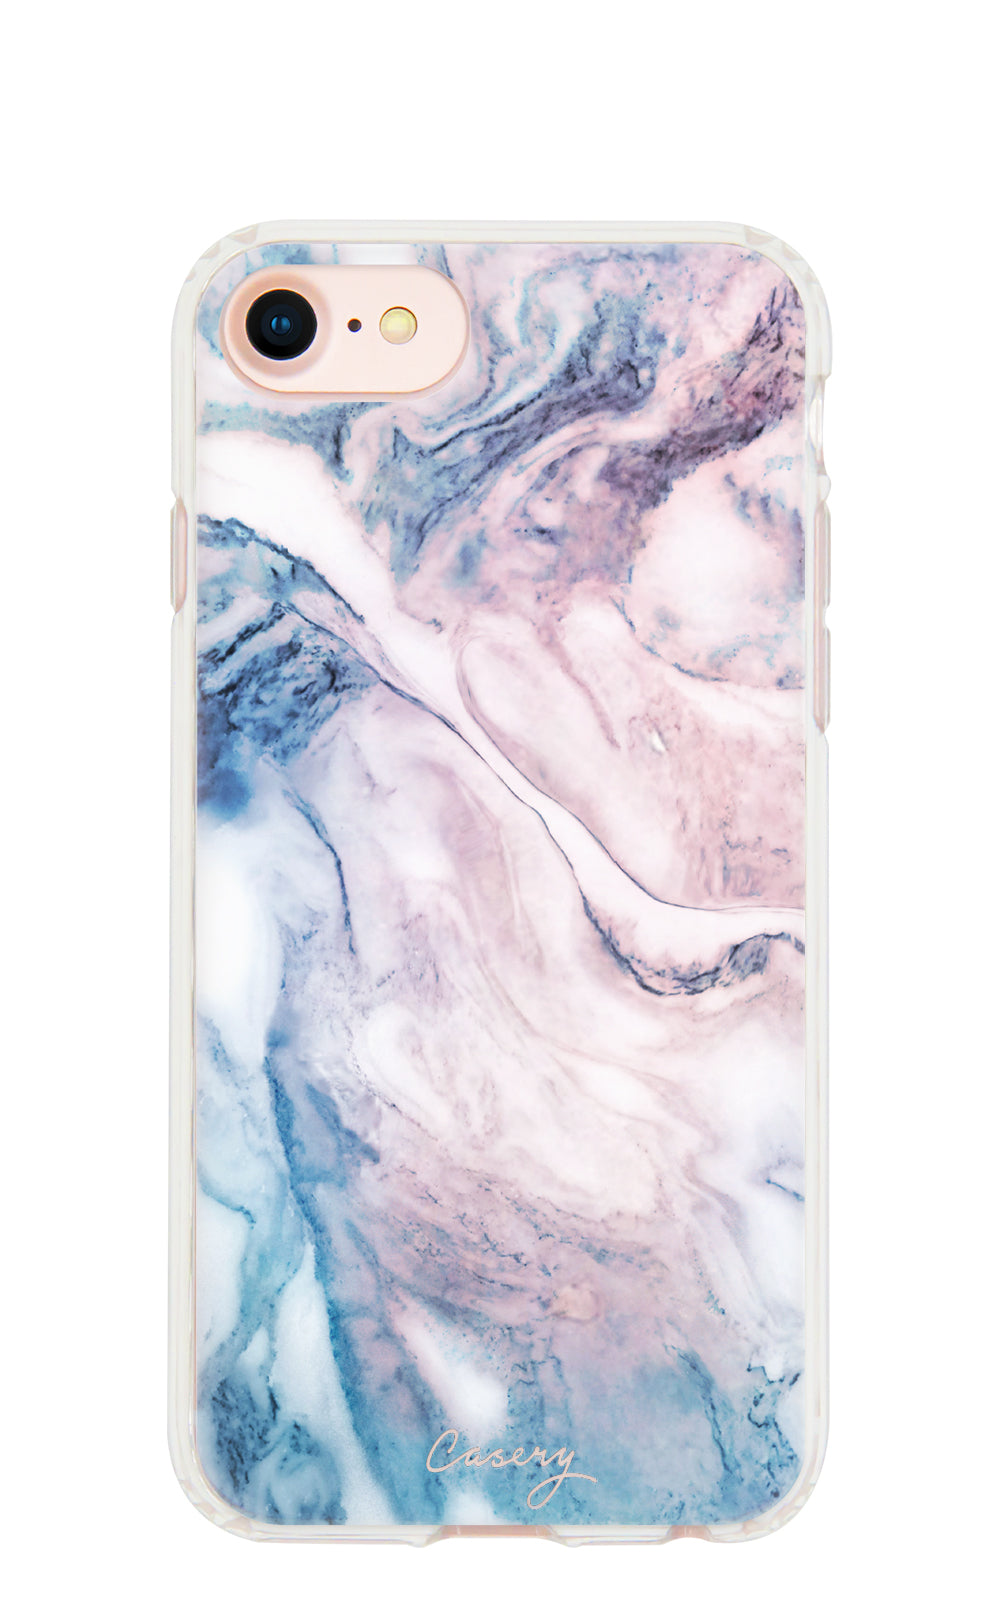 The Casery - Cloudy Marble iPhone Case